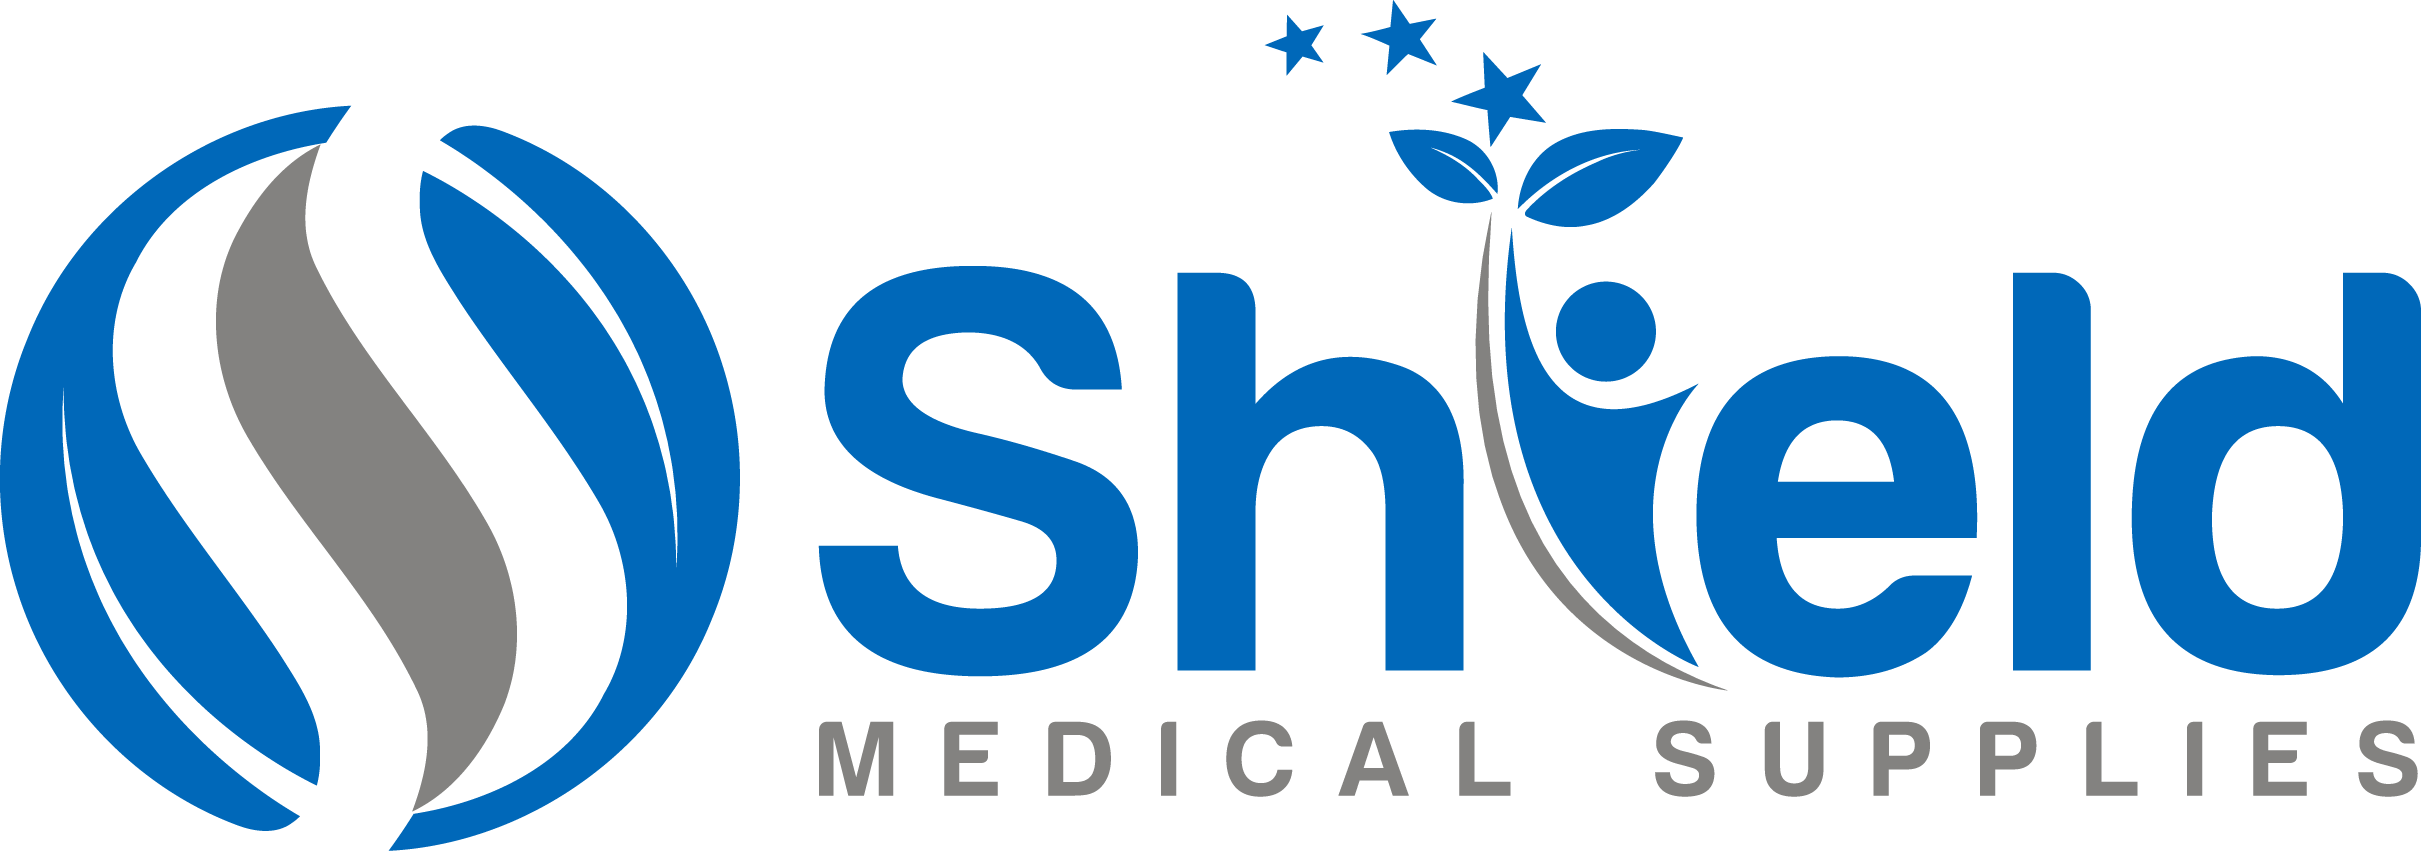 Shield Medical Supplies Valley Center, CA.png